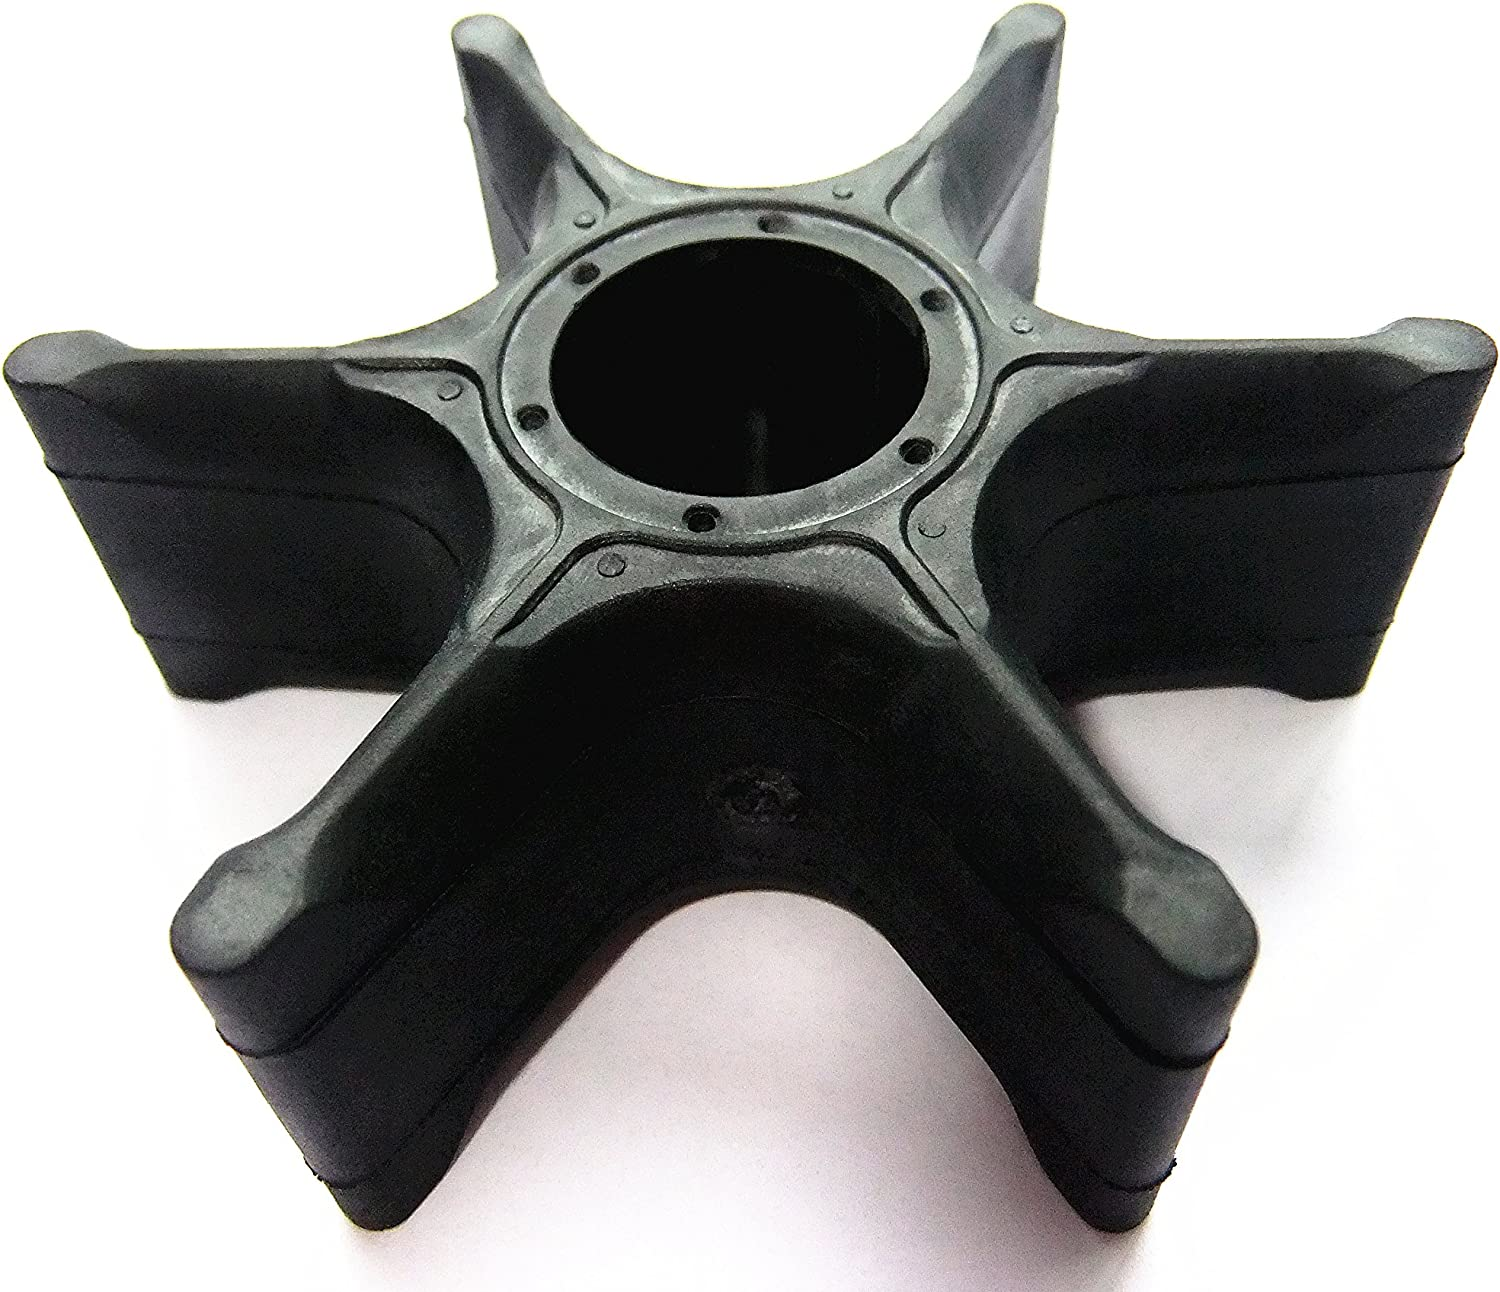 Boat Motor Water Pump Impeller 6E5-44352-03 6E5-44352-01 6E5-44352-01-00 18-3071 for Yamaha 100HP 115HP 150HP 200HP 225HP 250HP V4 V6 Outboard Engine